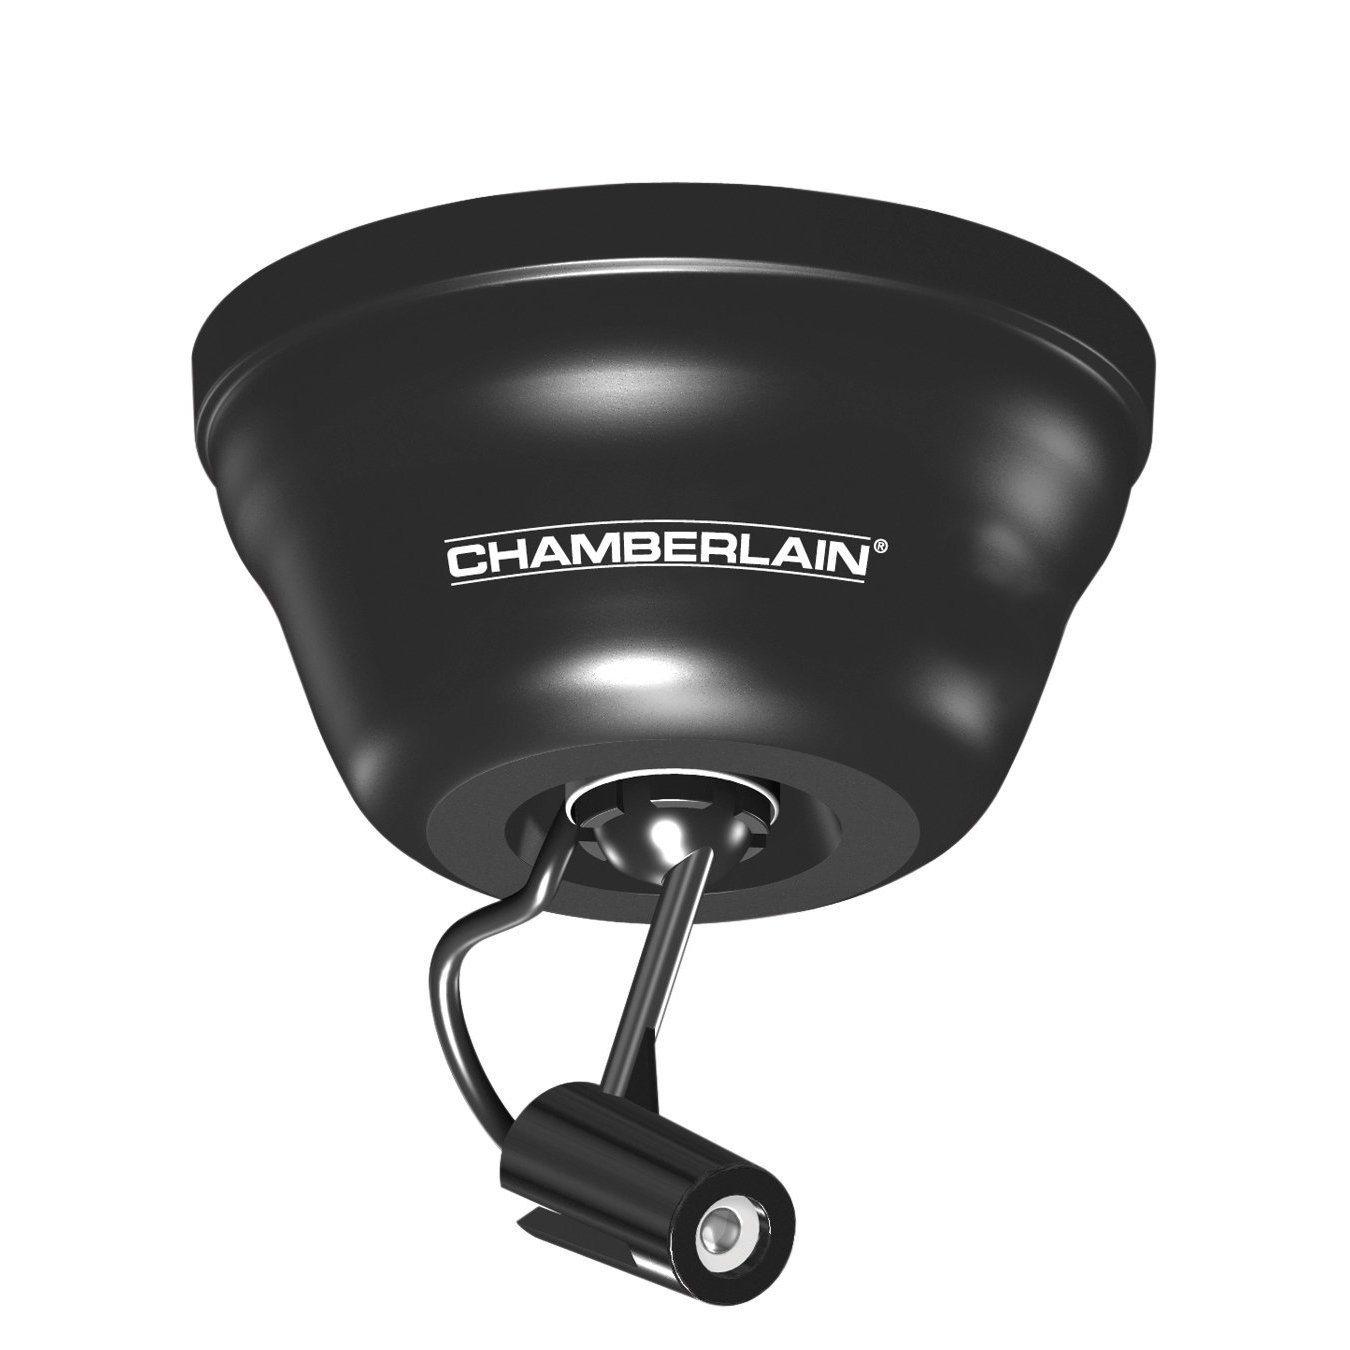 Chamberlain Universal Garage Parking Aid/Assistant CLULP1, Laser Identifies Perfect Parking Spot, Works with Chamberlain, LiftMaster, Craftsman, Genie and All Other Brands of Garage Door Openers